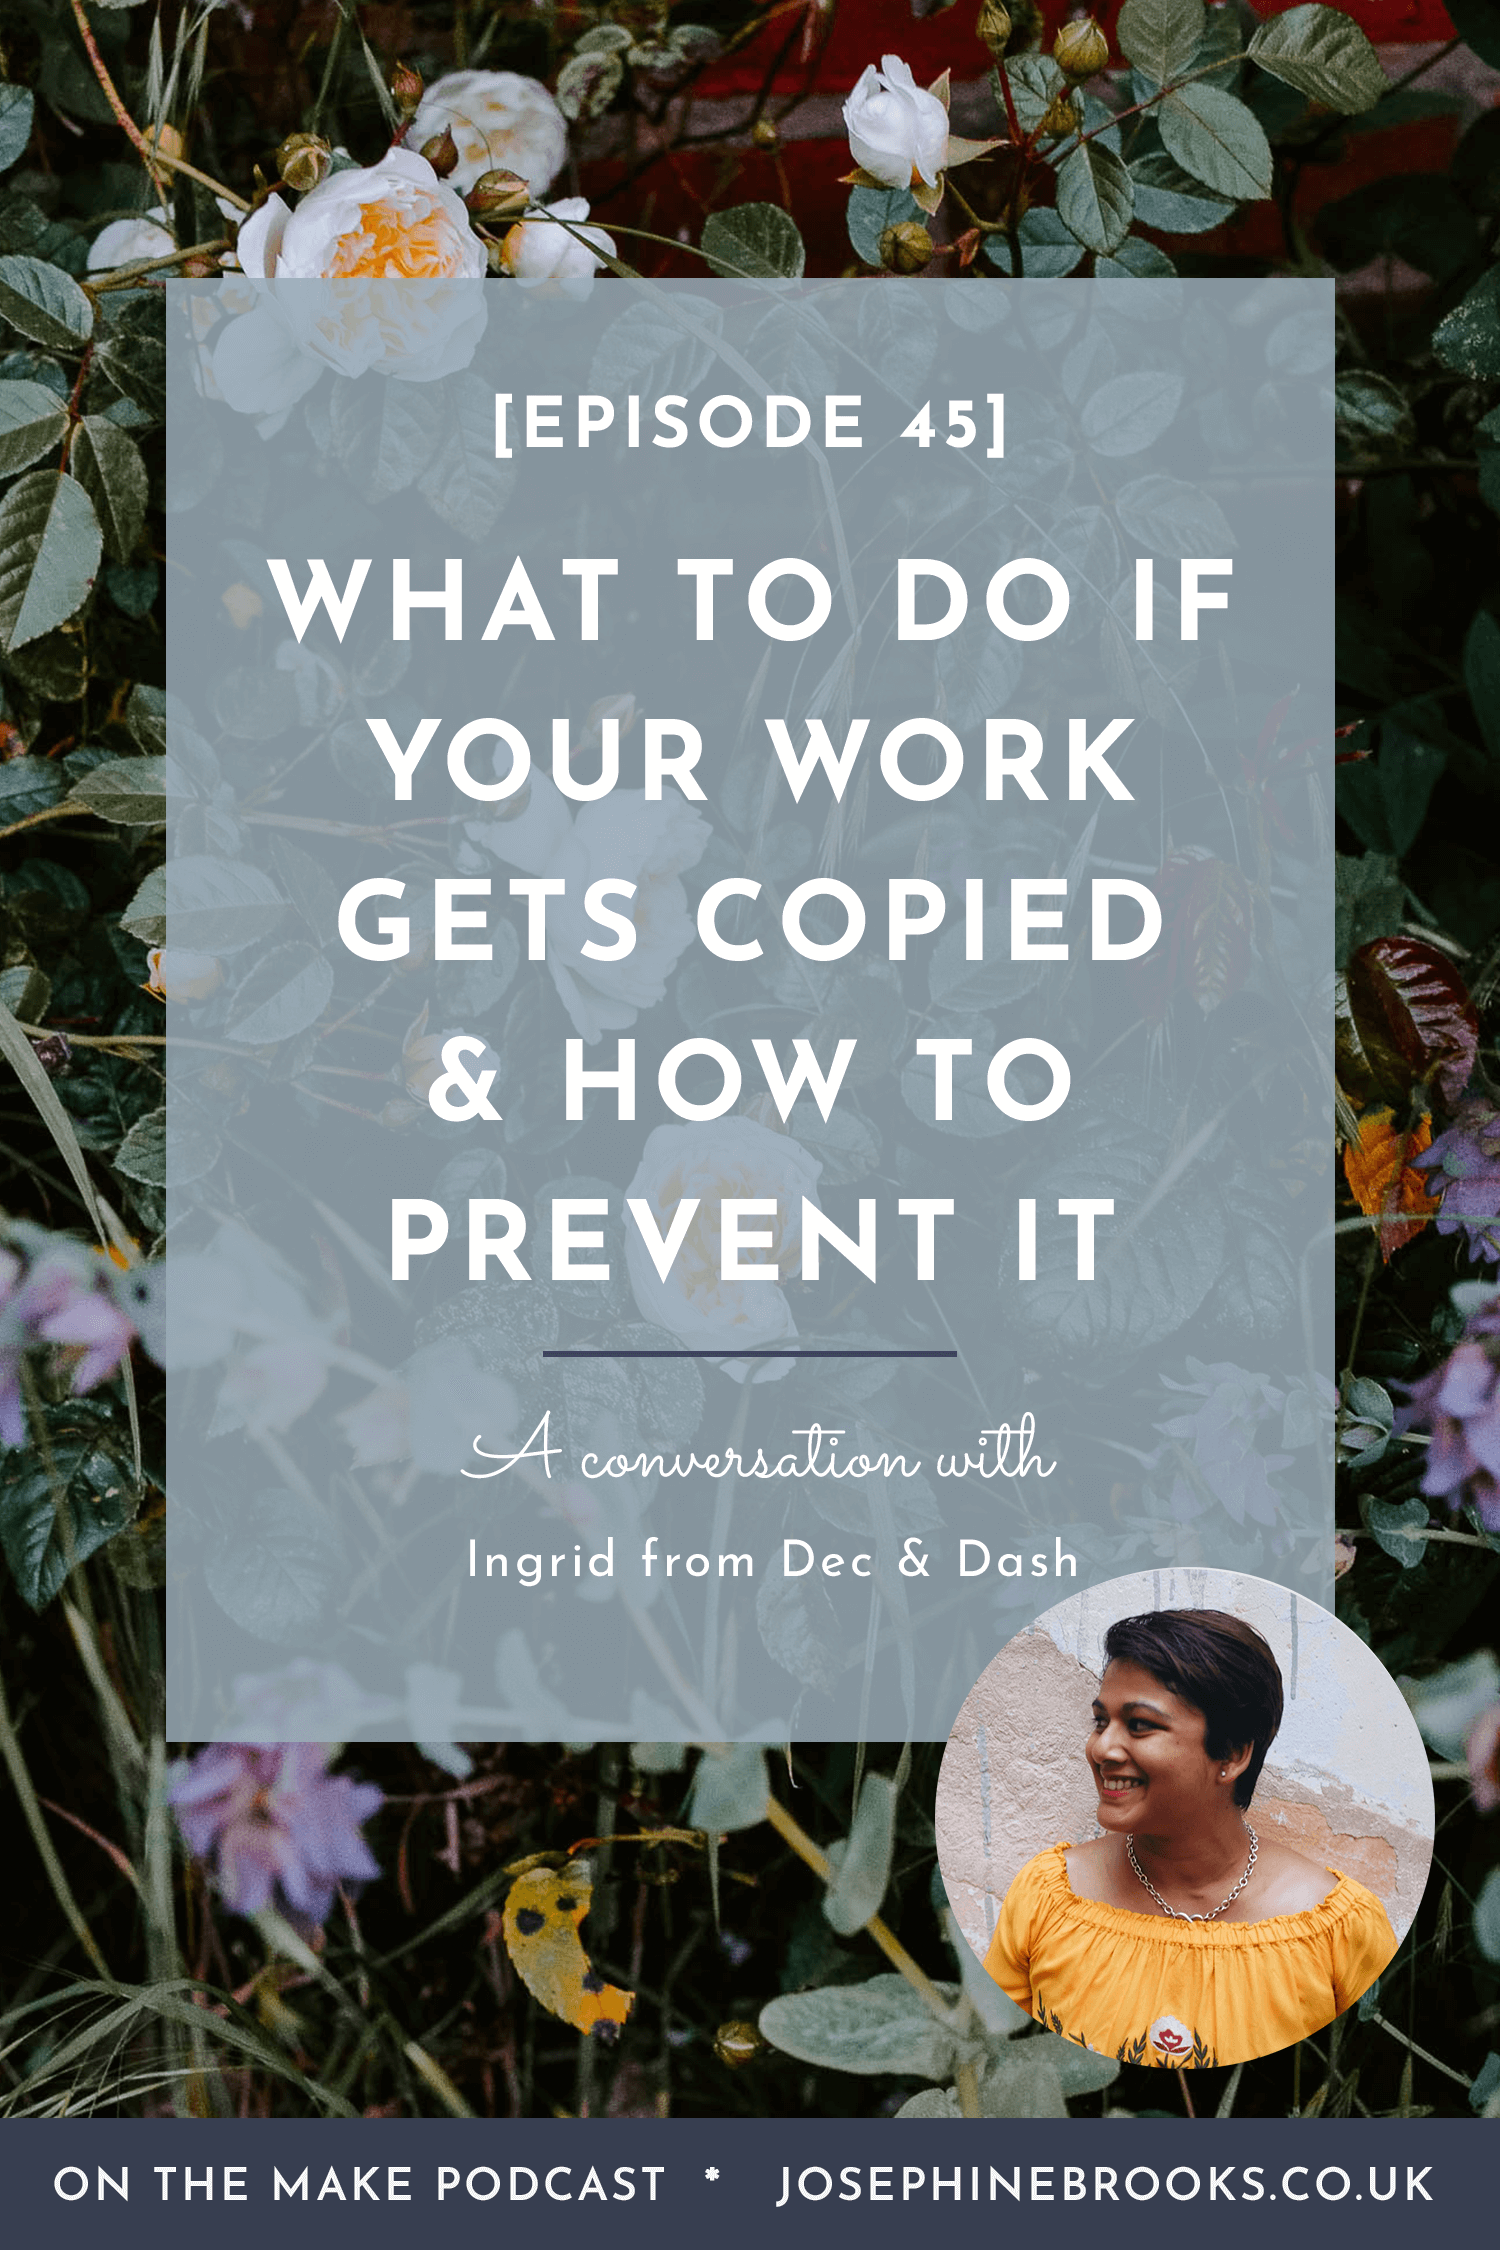 What To Do If Your Work Gets Copied & How to Prevent It with Ingrid from Dec & Dash legal consulting - Episode 45 of On The Make Podcast hosted by Josephine Brooks